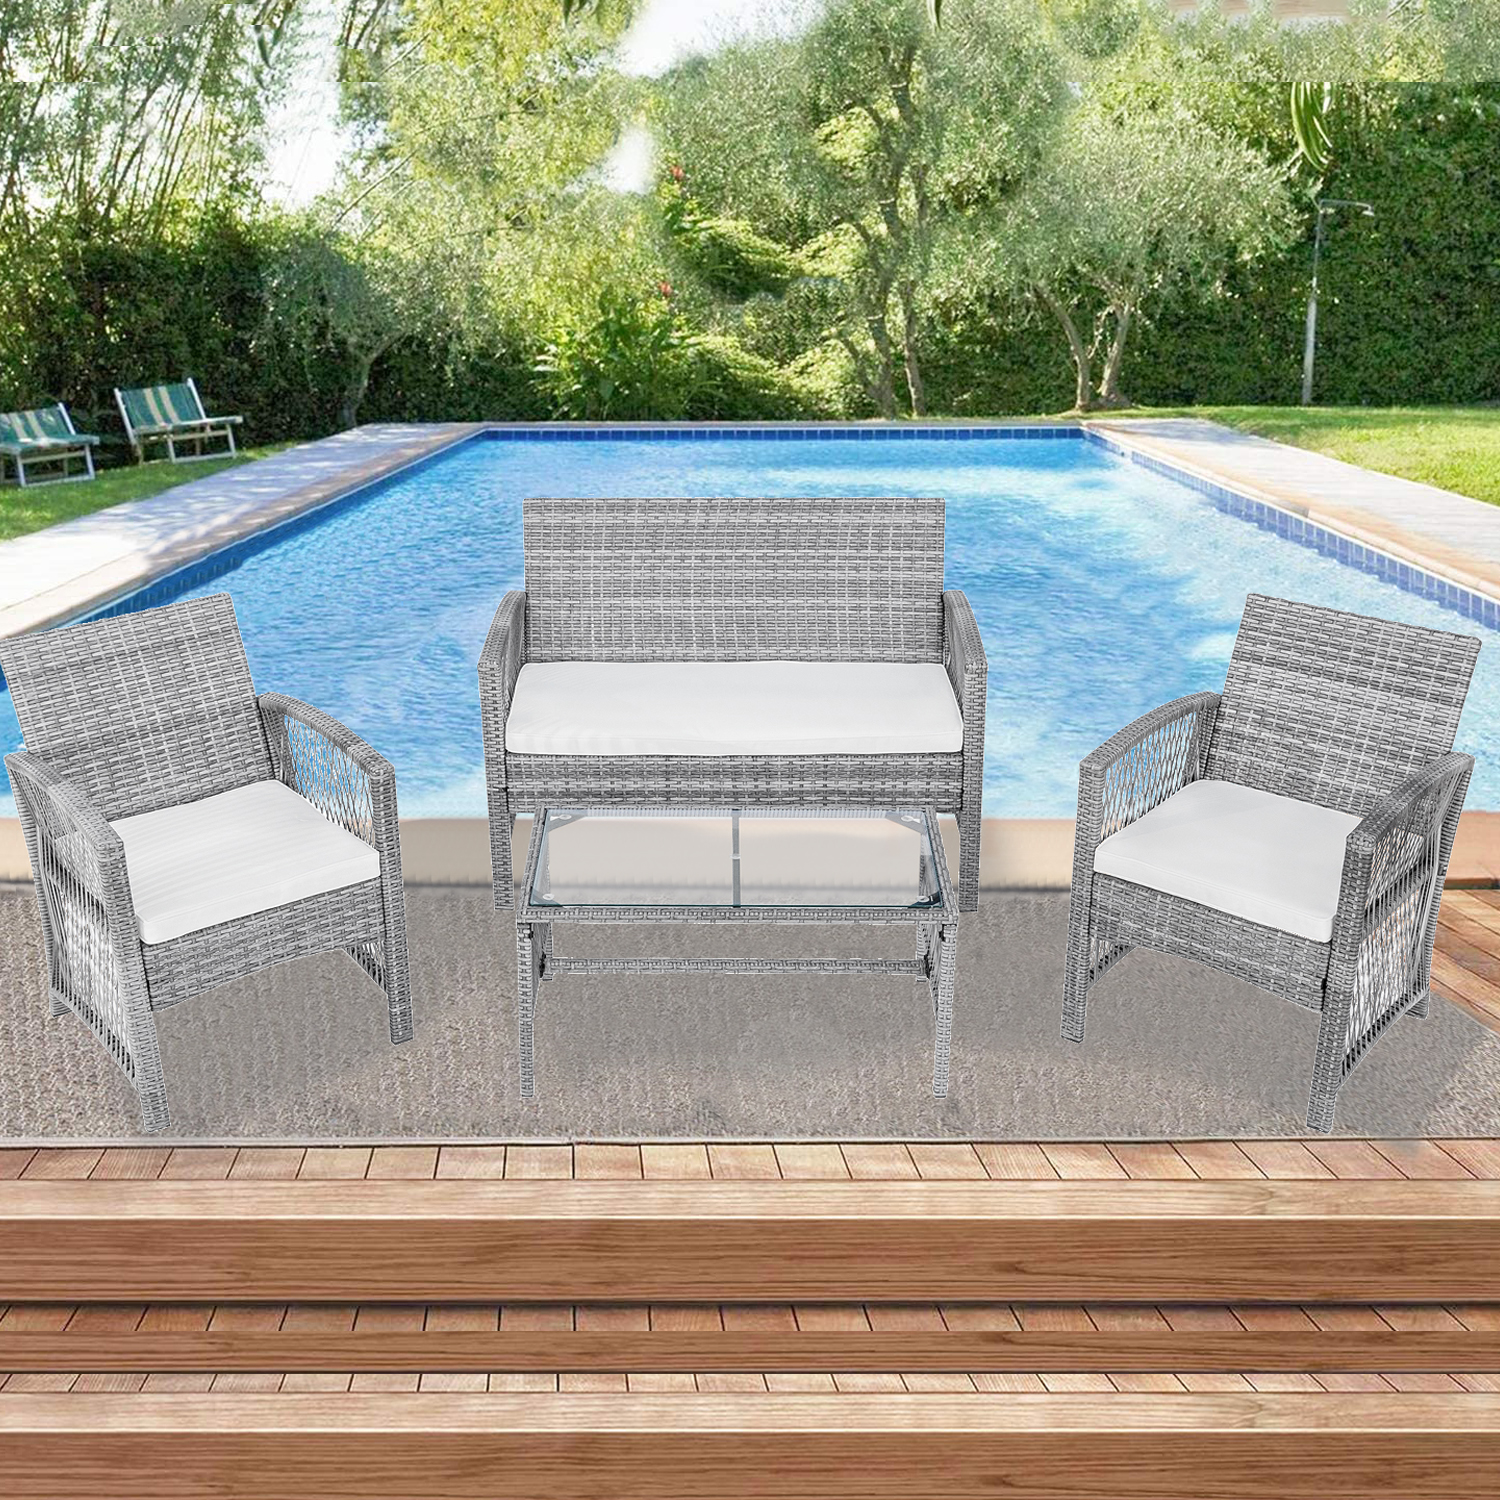 rattan patio furniture sets clearance 4 piece outdoor conversation sets wicker bar set with 2 arm chairs 1 loveseat coffee table patio dining